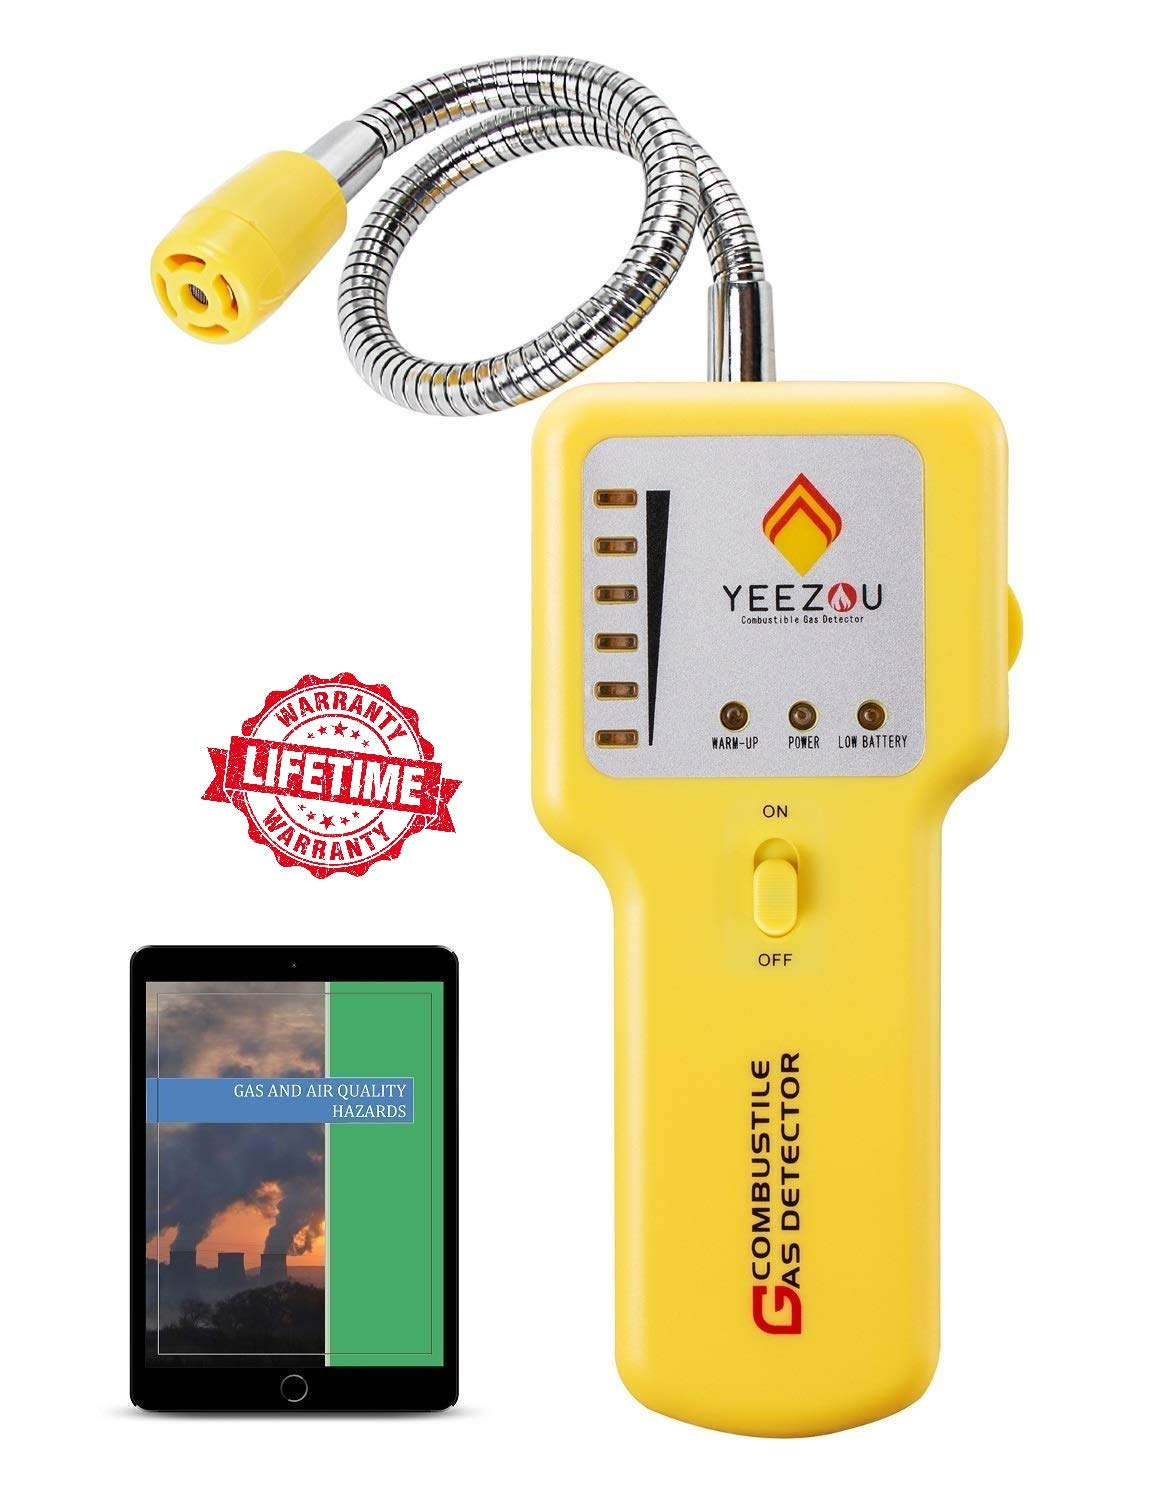 Natural Gas Detector, Propane Gas Leak Detector, Gas Sniffer, Portable Combustible Explosive Gas Sensor, Tester: Methane, Butane, LPG, LNG; Sound & LED Warning (Gas Leak Detector)